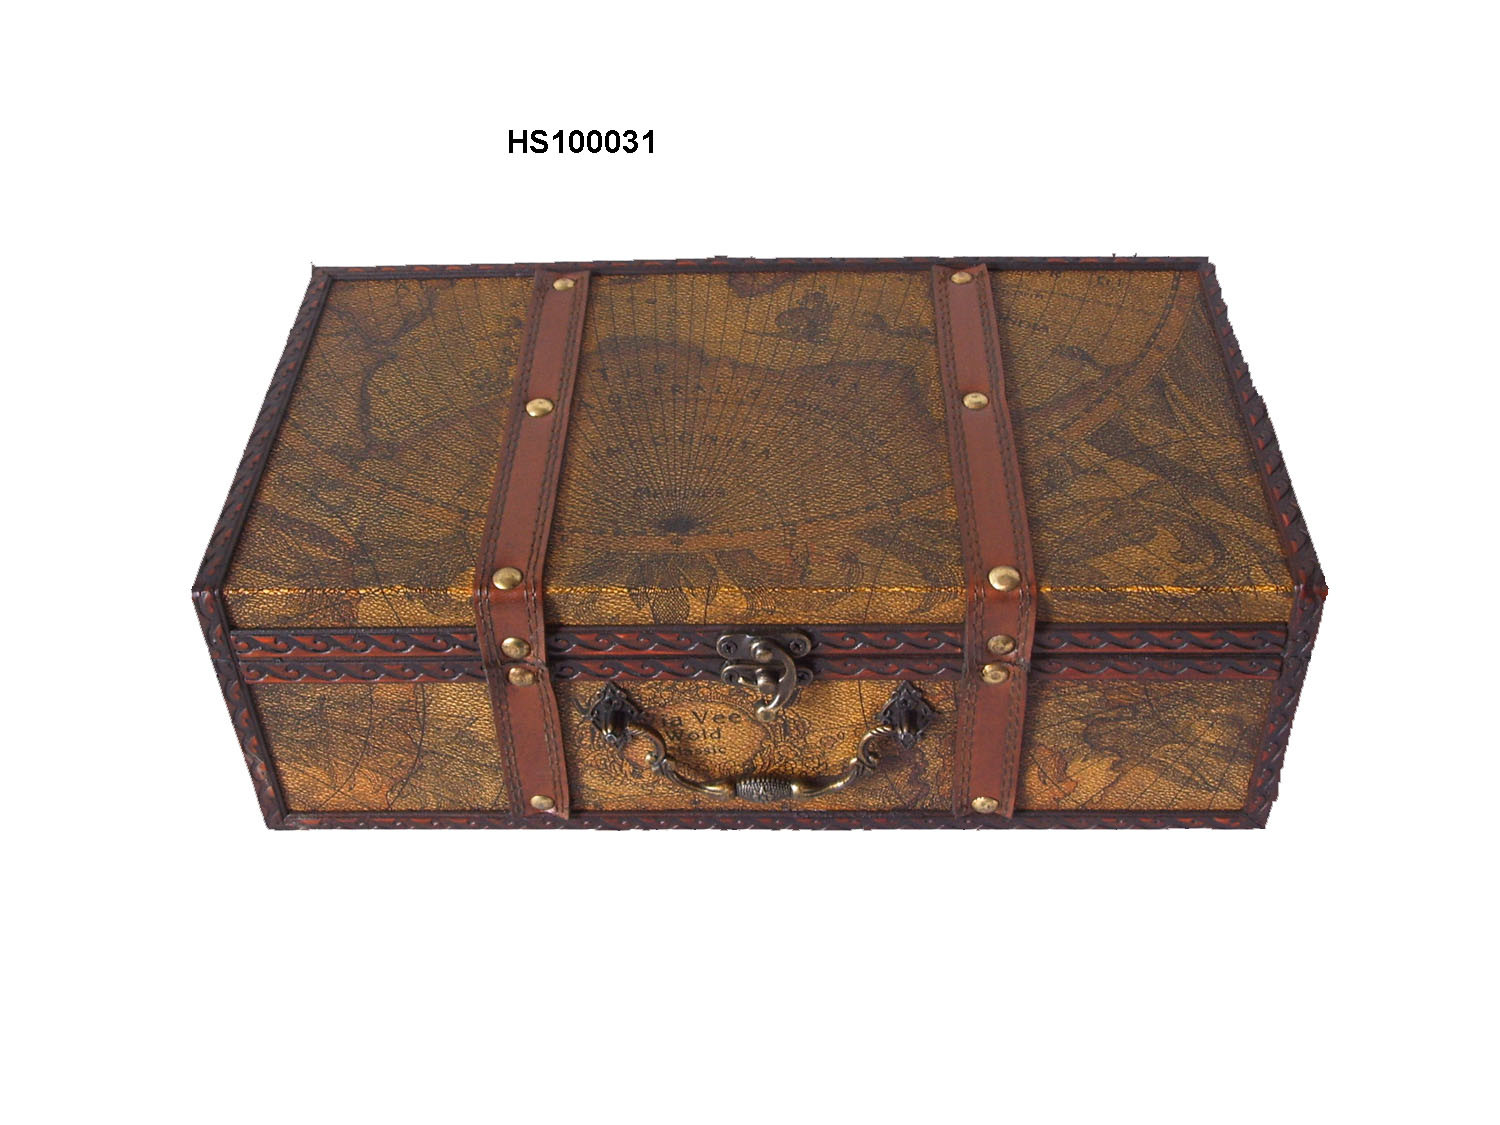 China Antique Wooden Box Suitcase Hs100031 China